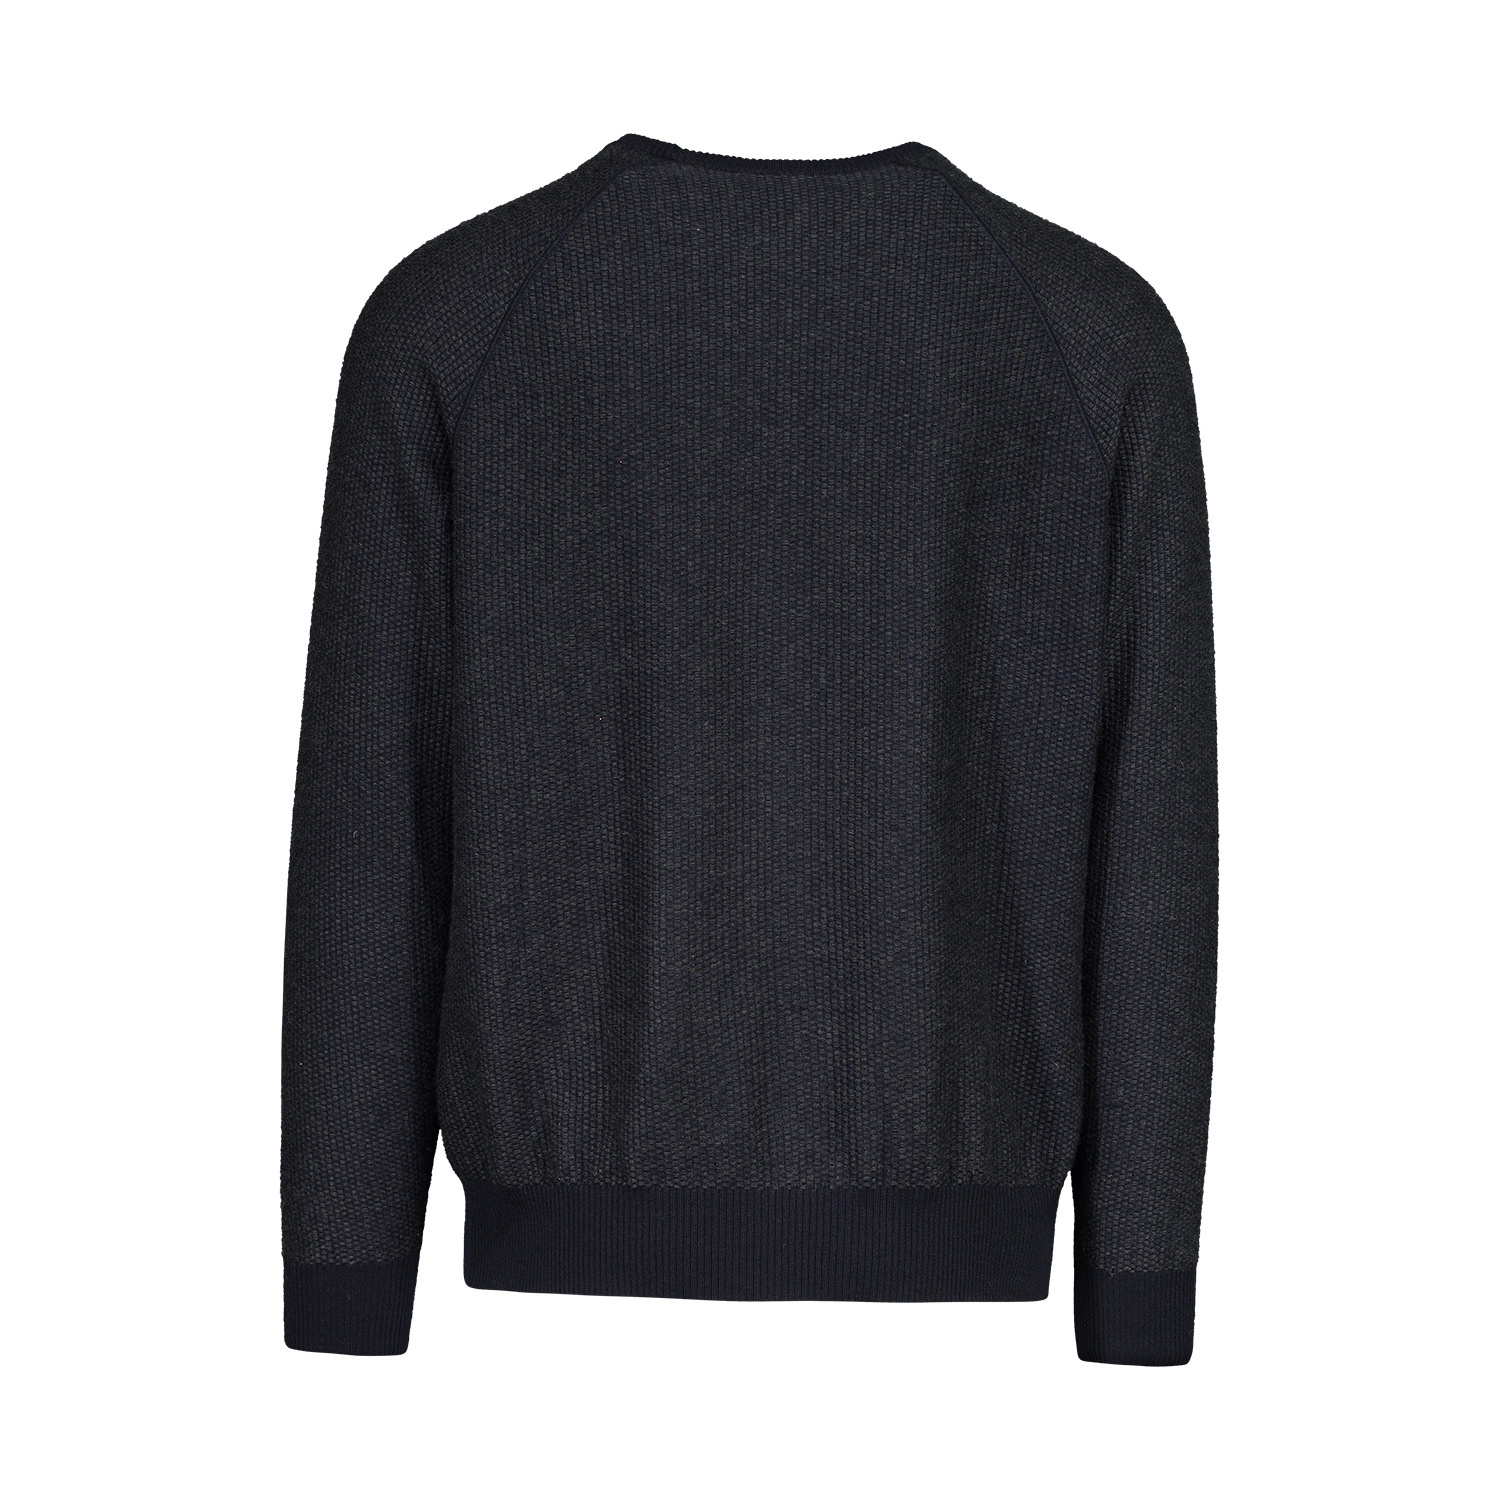 Valentino N/A - Valentino Charcoal And Navy Thermal Cashmere Blend Sweater